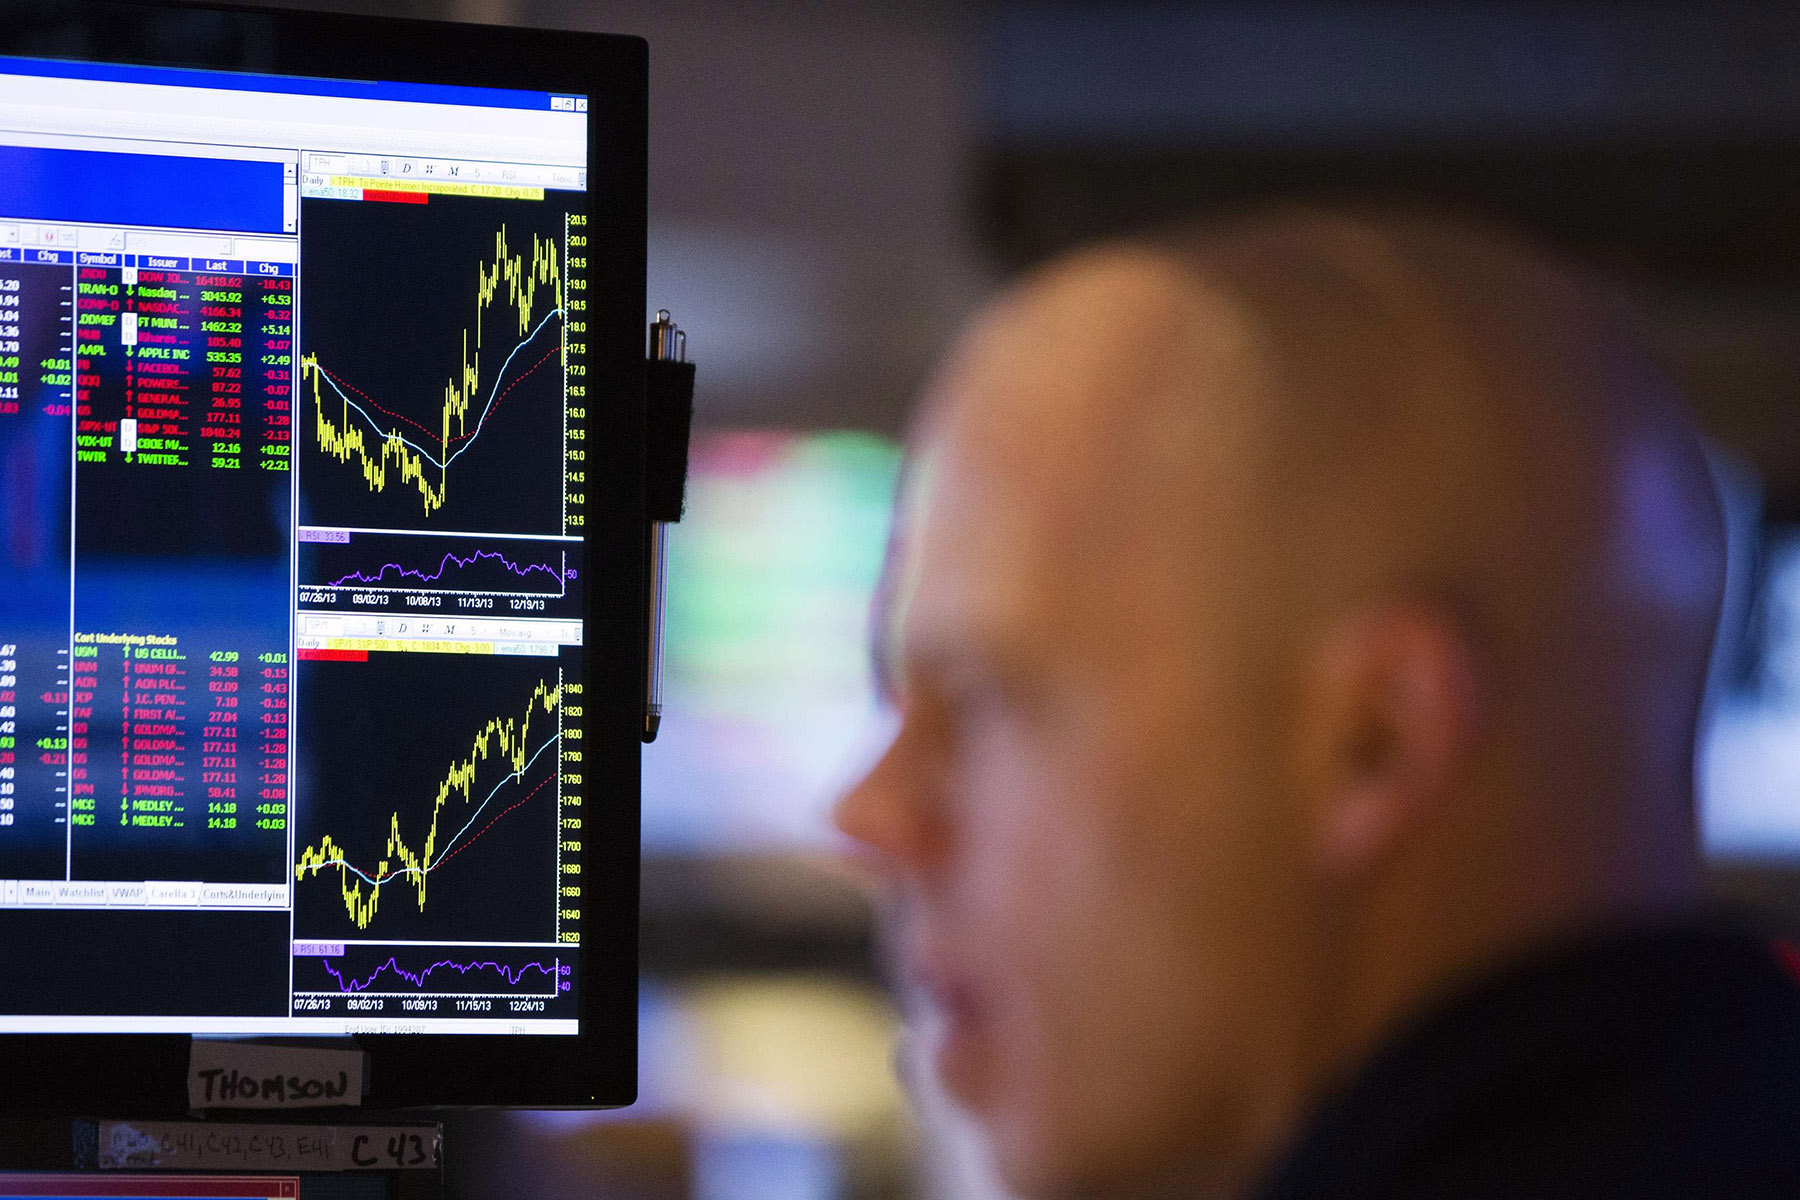 A trader works on the floor of the New York Stock Exchange in the Manhattan borough of New York, Jan. 13, 2014.